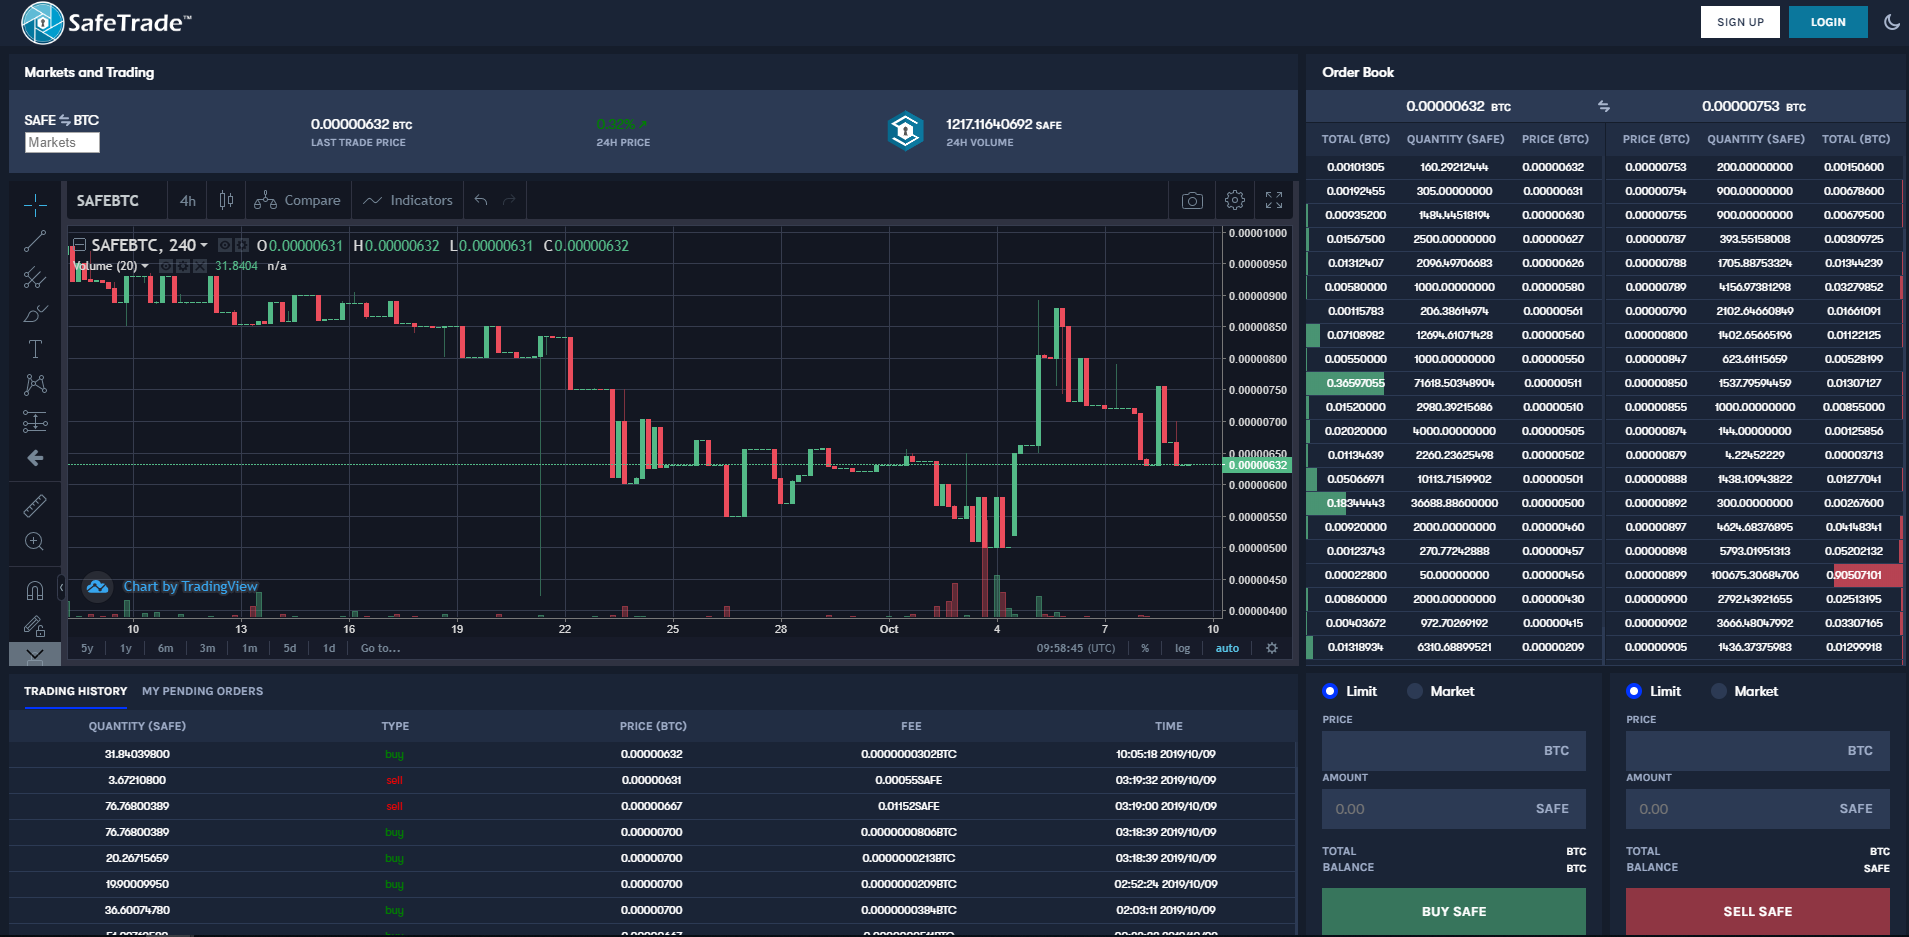 SafeTrade Trading View